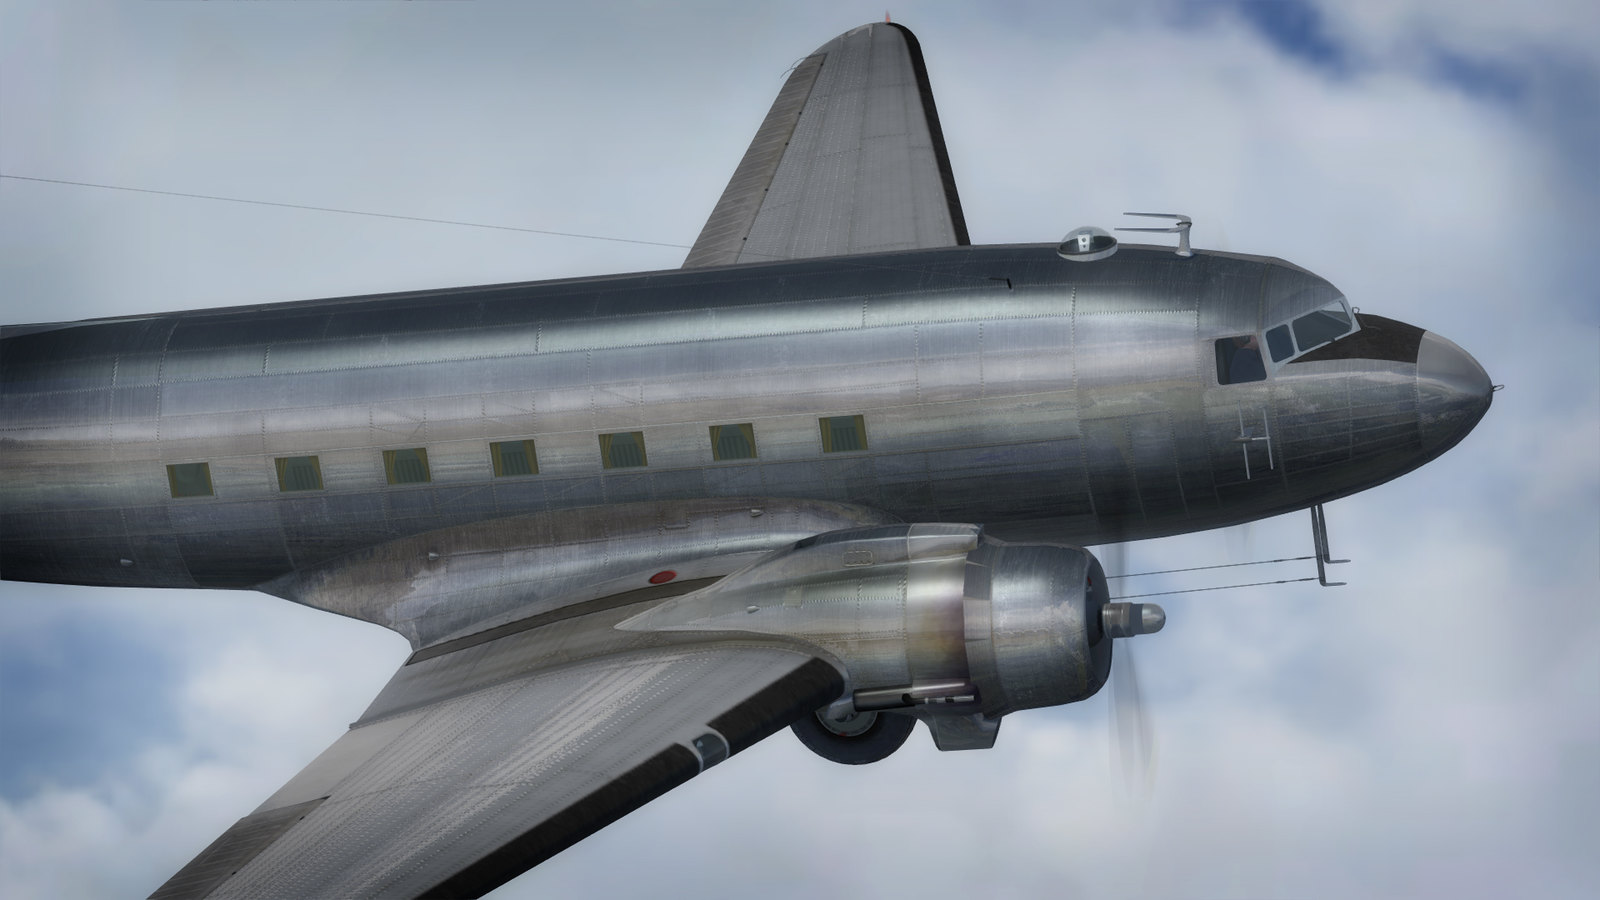 Attention all DC-3 fans ! - Page 51